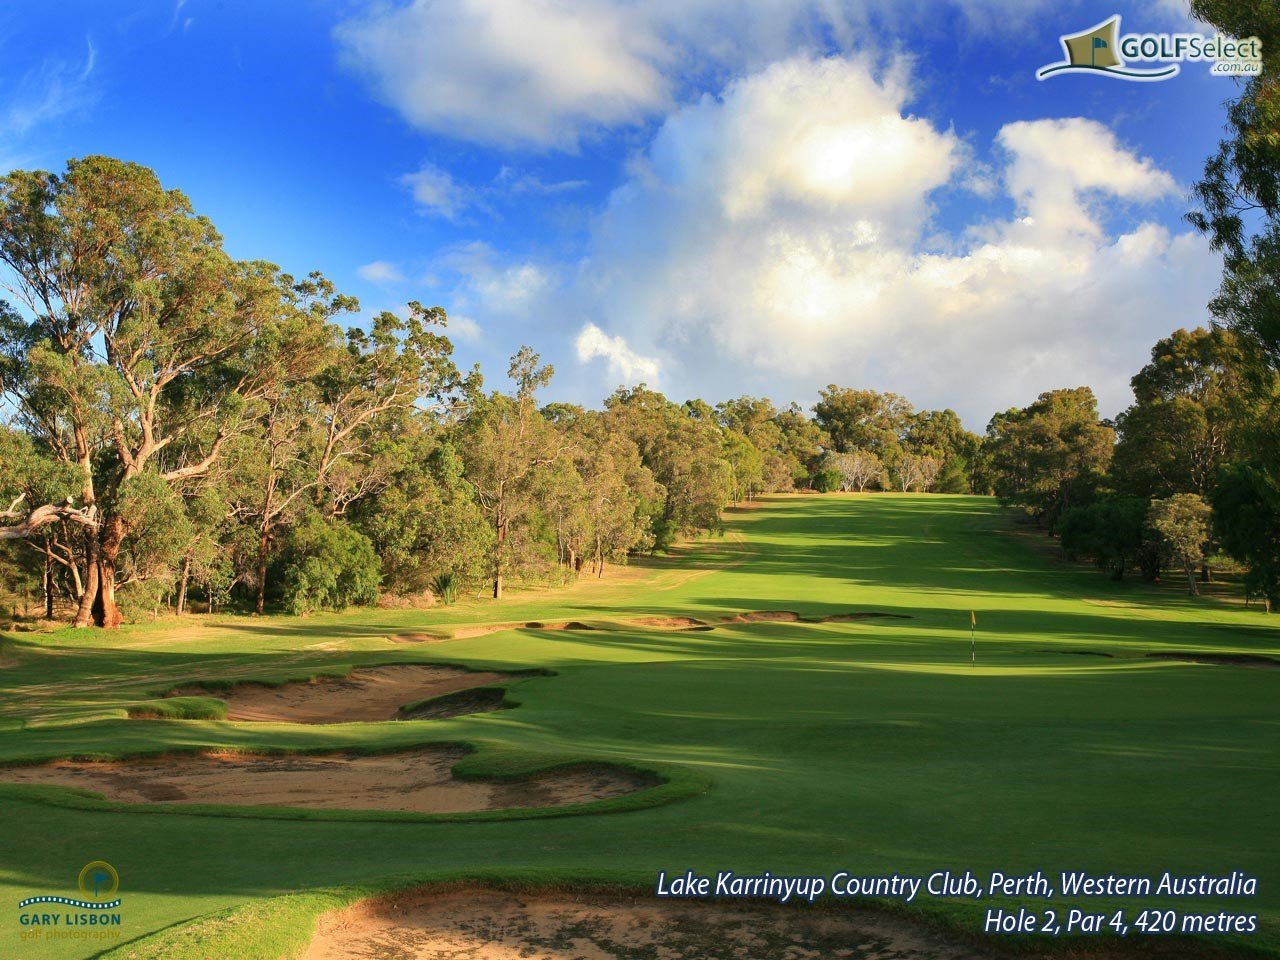 Lake Karrinyup Country Club Hole 2, Par 4, 420 metres